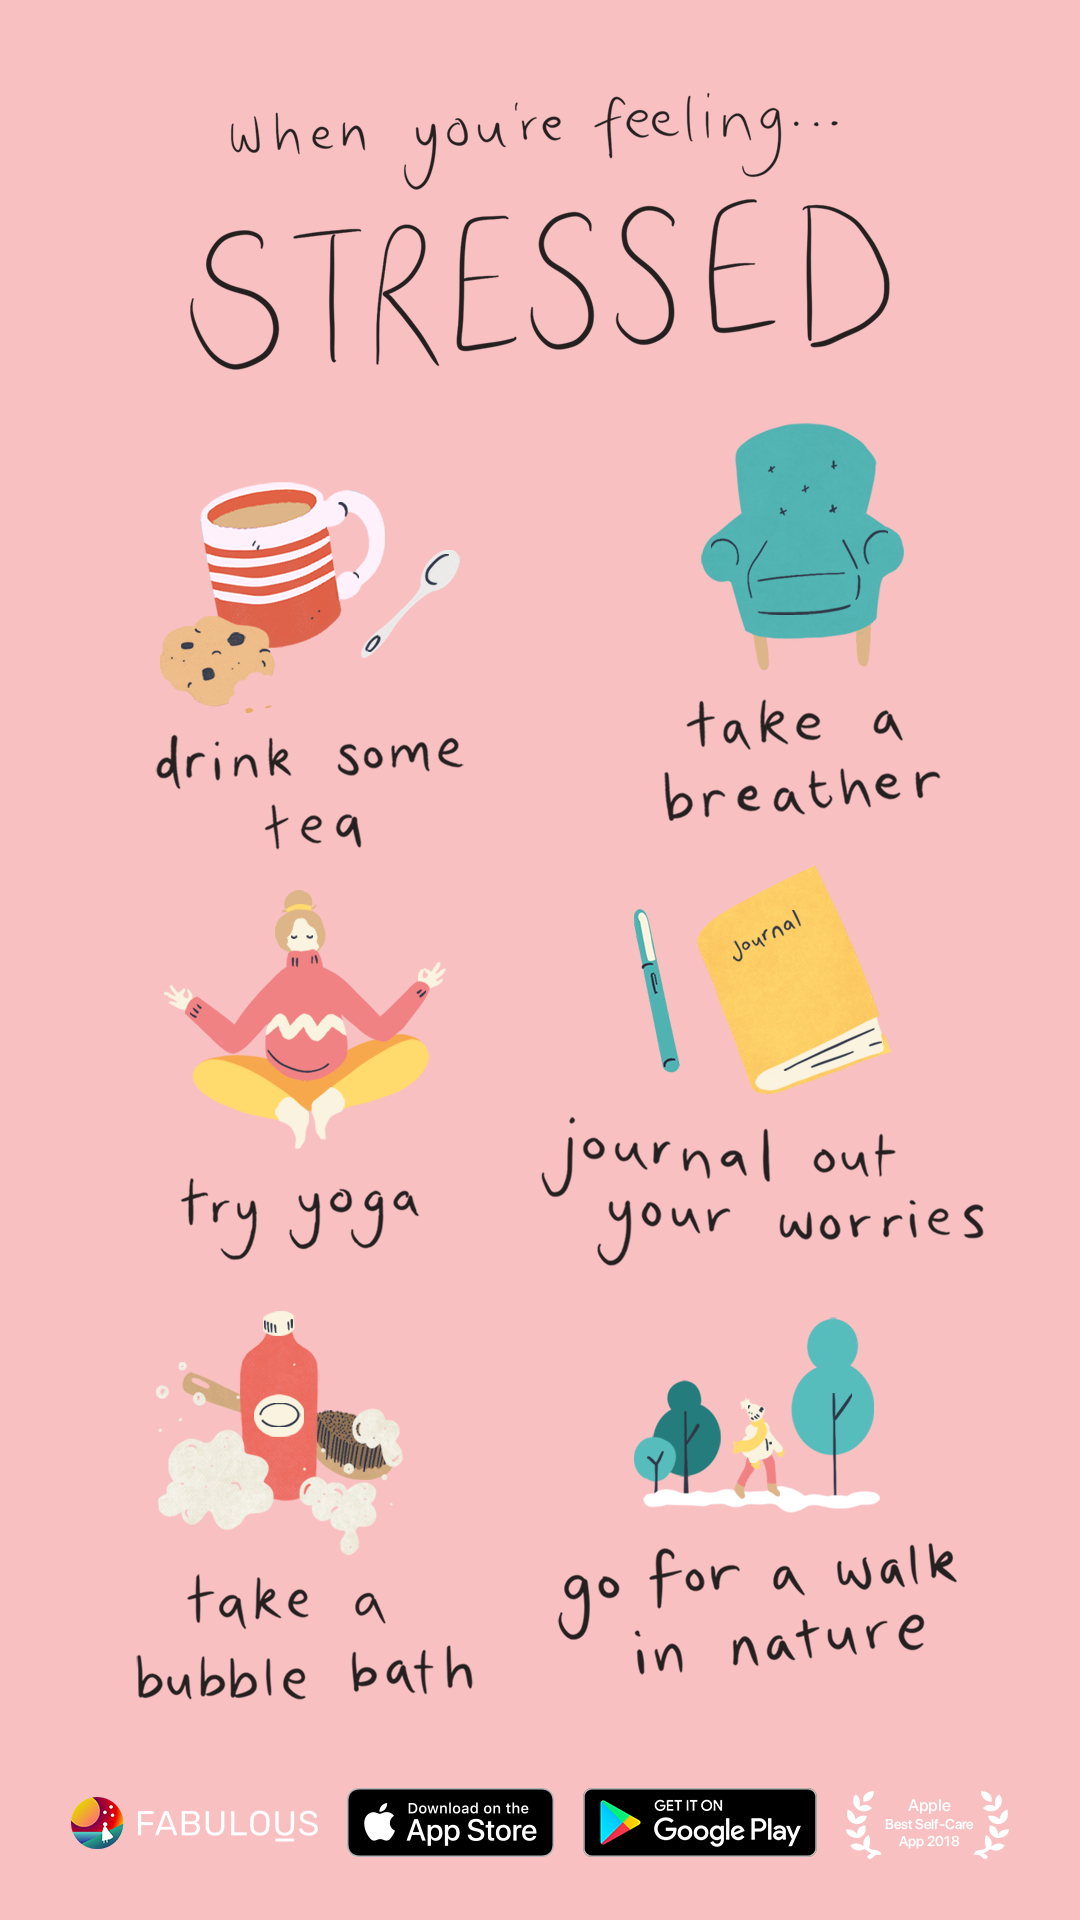 When You're Feeling Stressed... Try This!